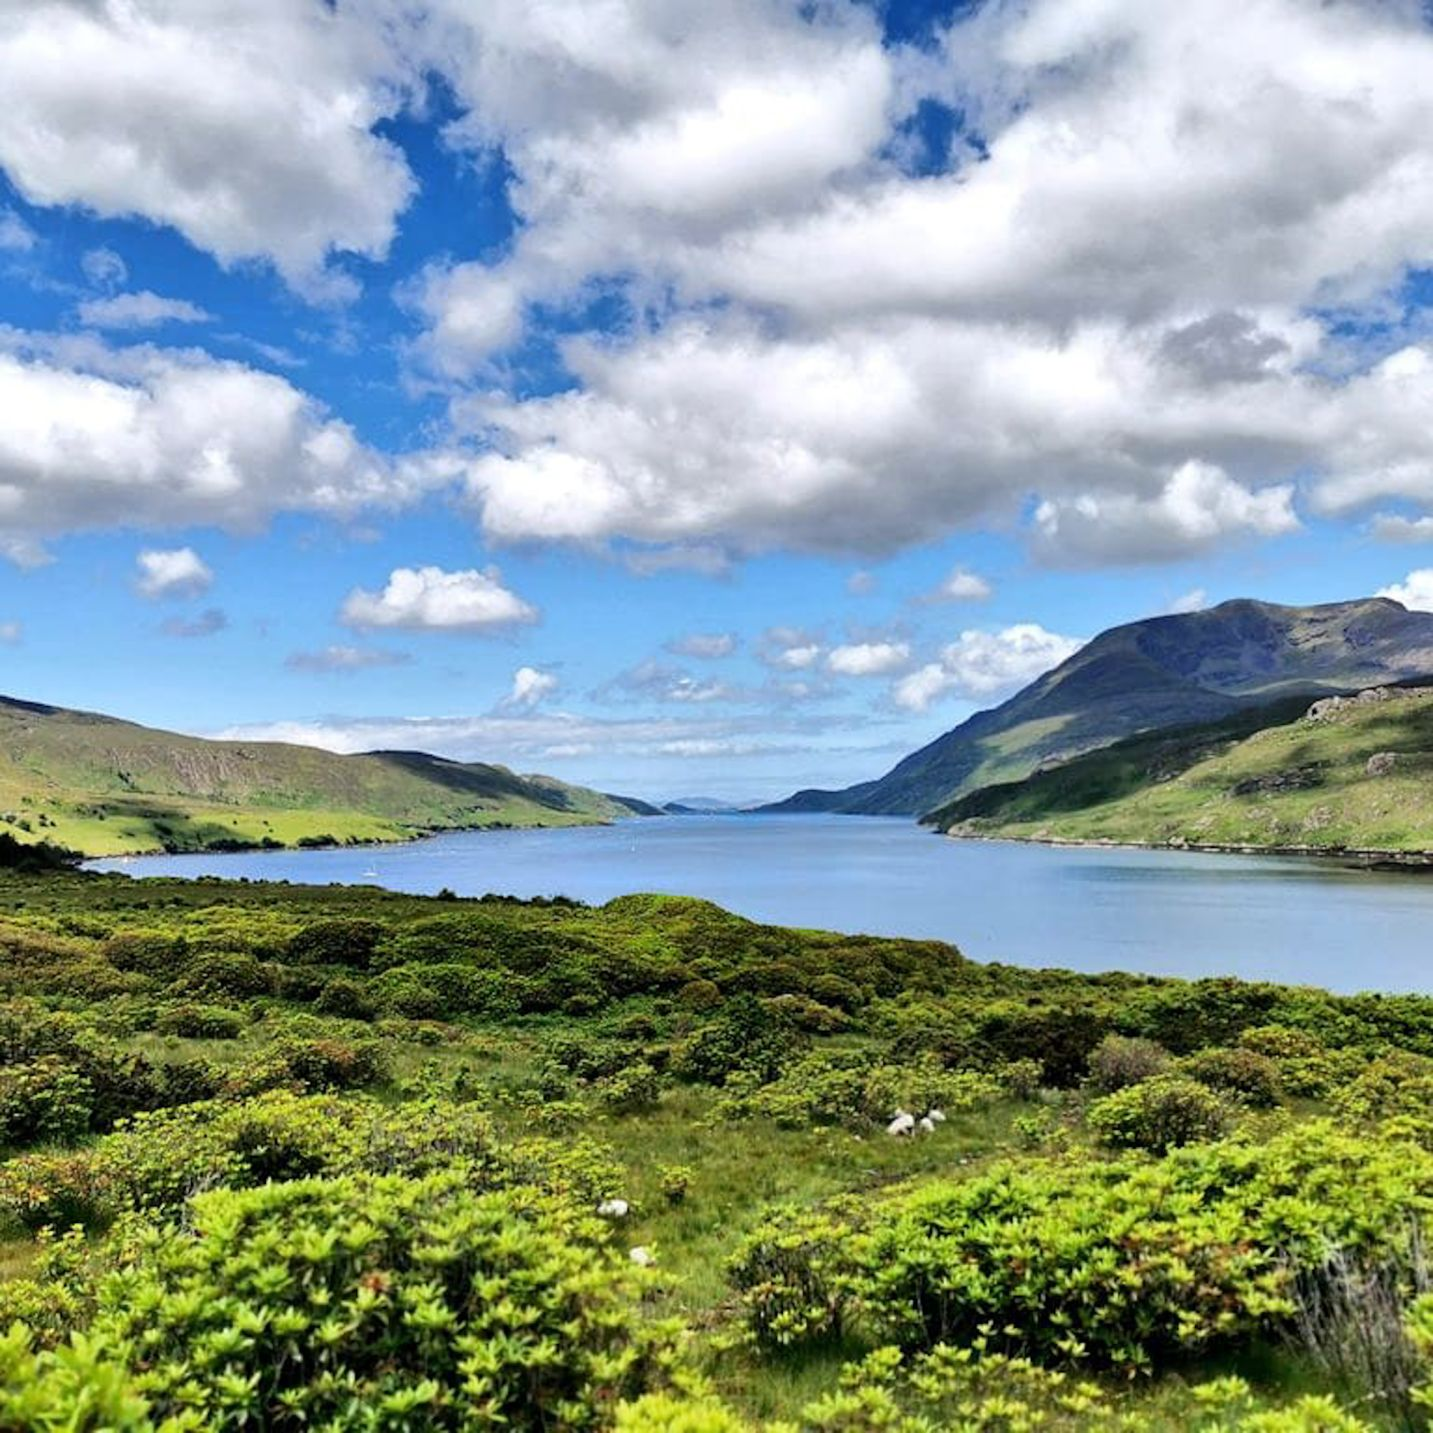 FORTY EIGHT HOURS IN COUNTY GALWAY